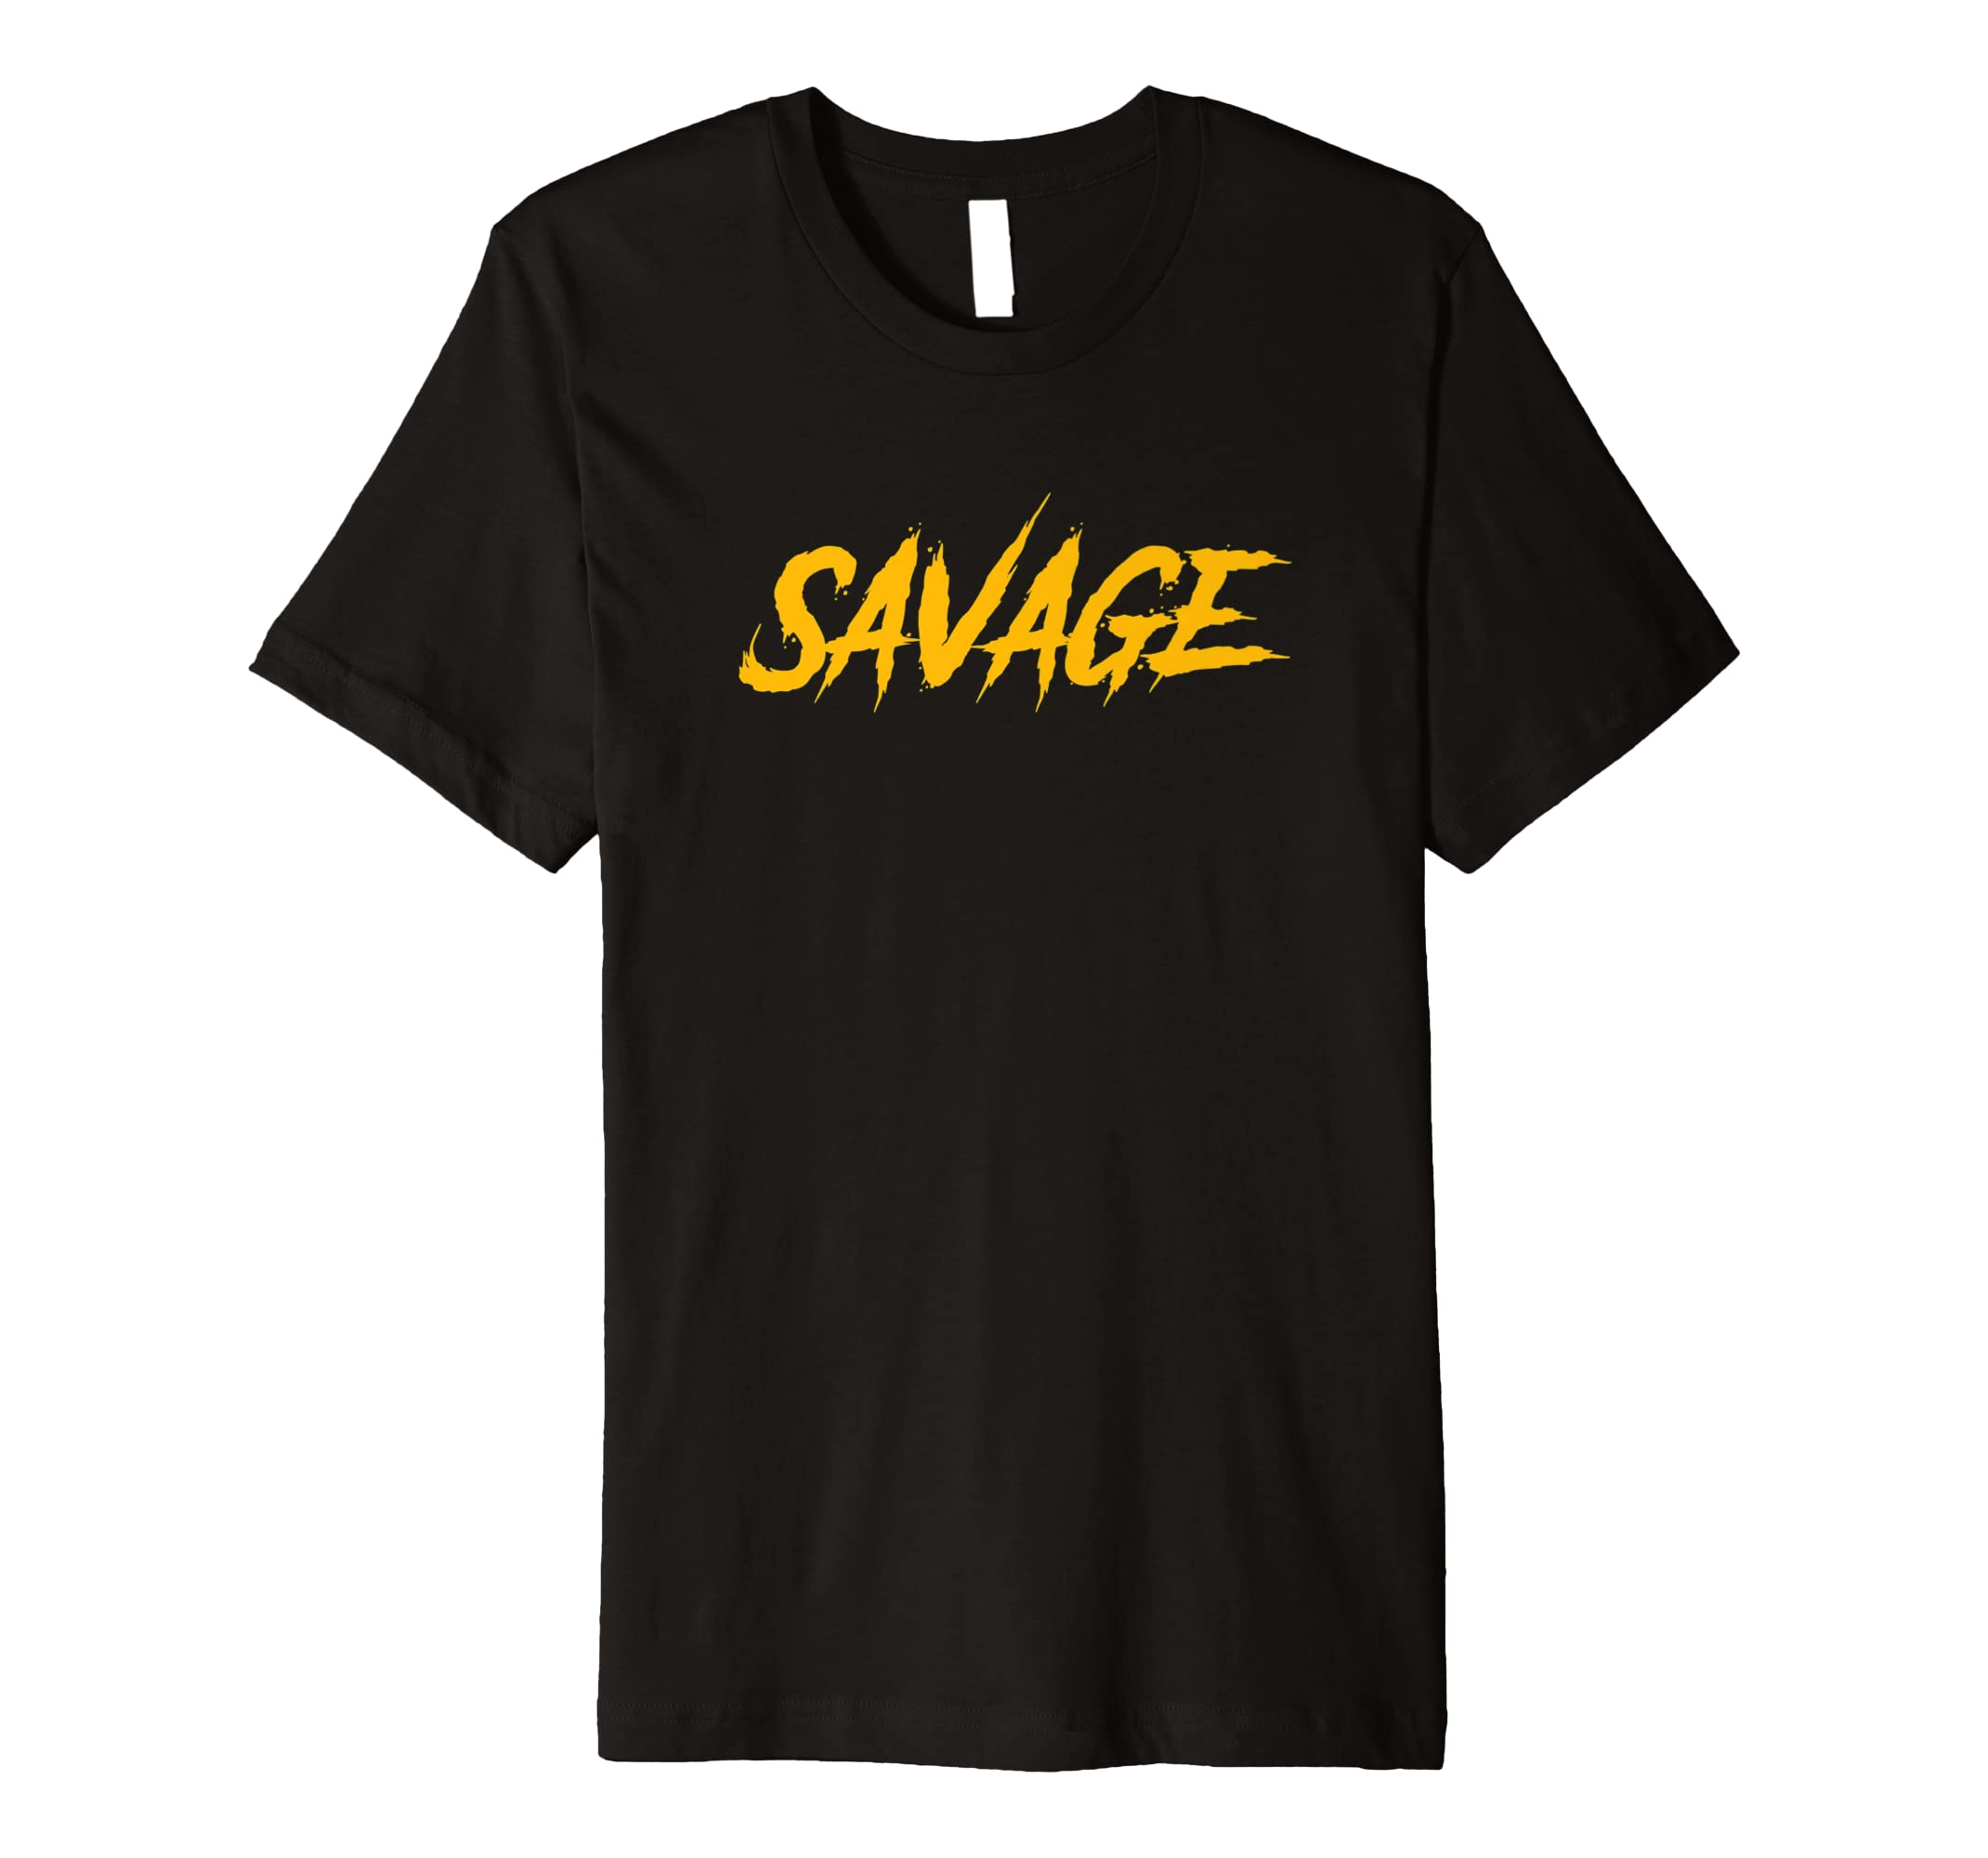 9a698be918b Amazon.com  Black   Yellow Savage T-Shirt for Men   Women Savage Gear   Clothing